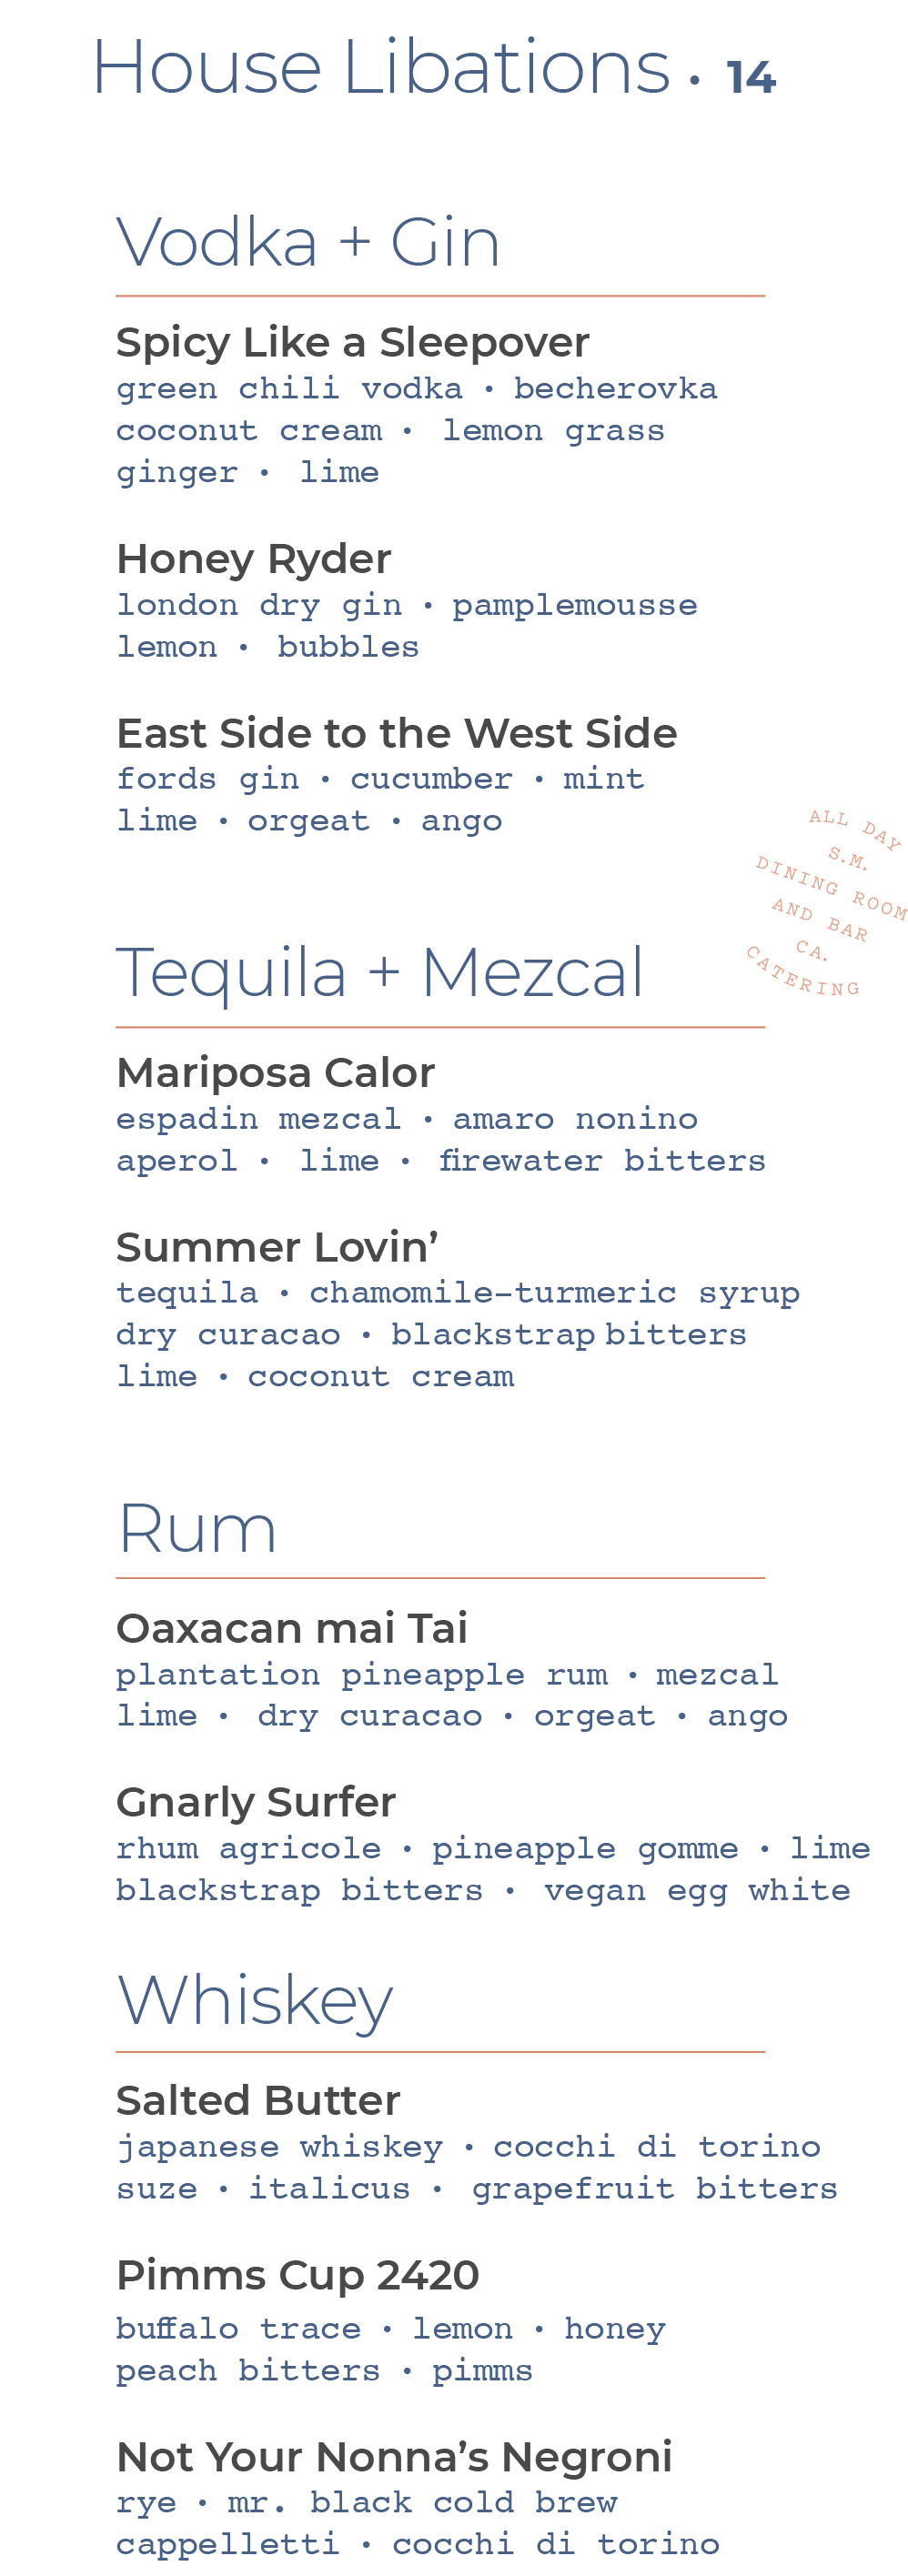 LDR Cocktail Menu 6.16.jpg